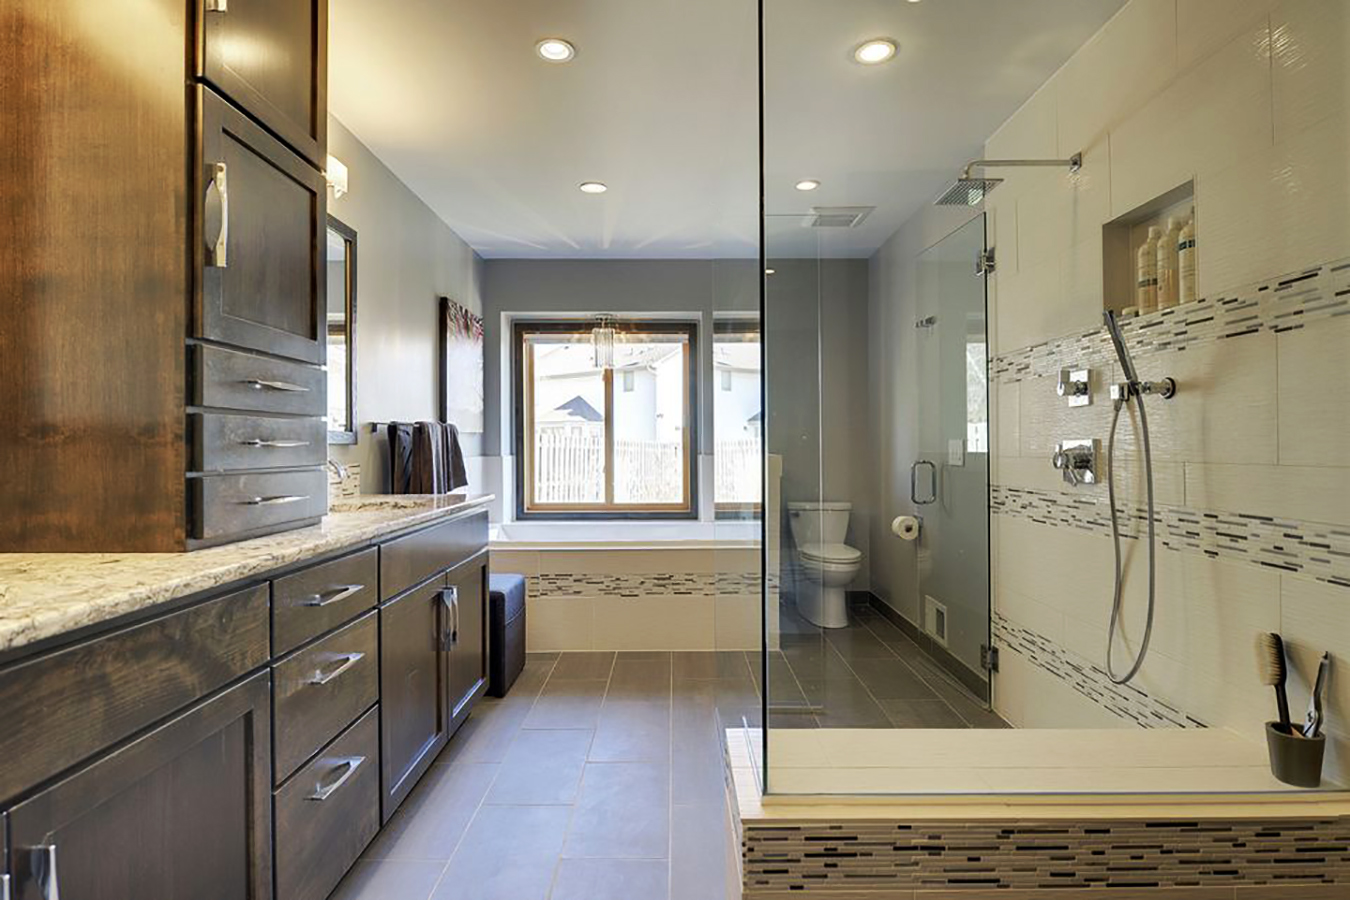 Bathroom Remodel Gallery bathroom remodeling gallery | lake to lake construction